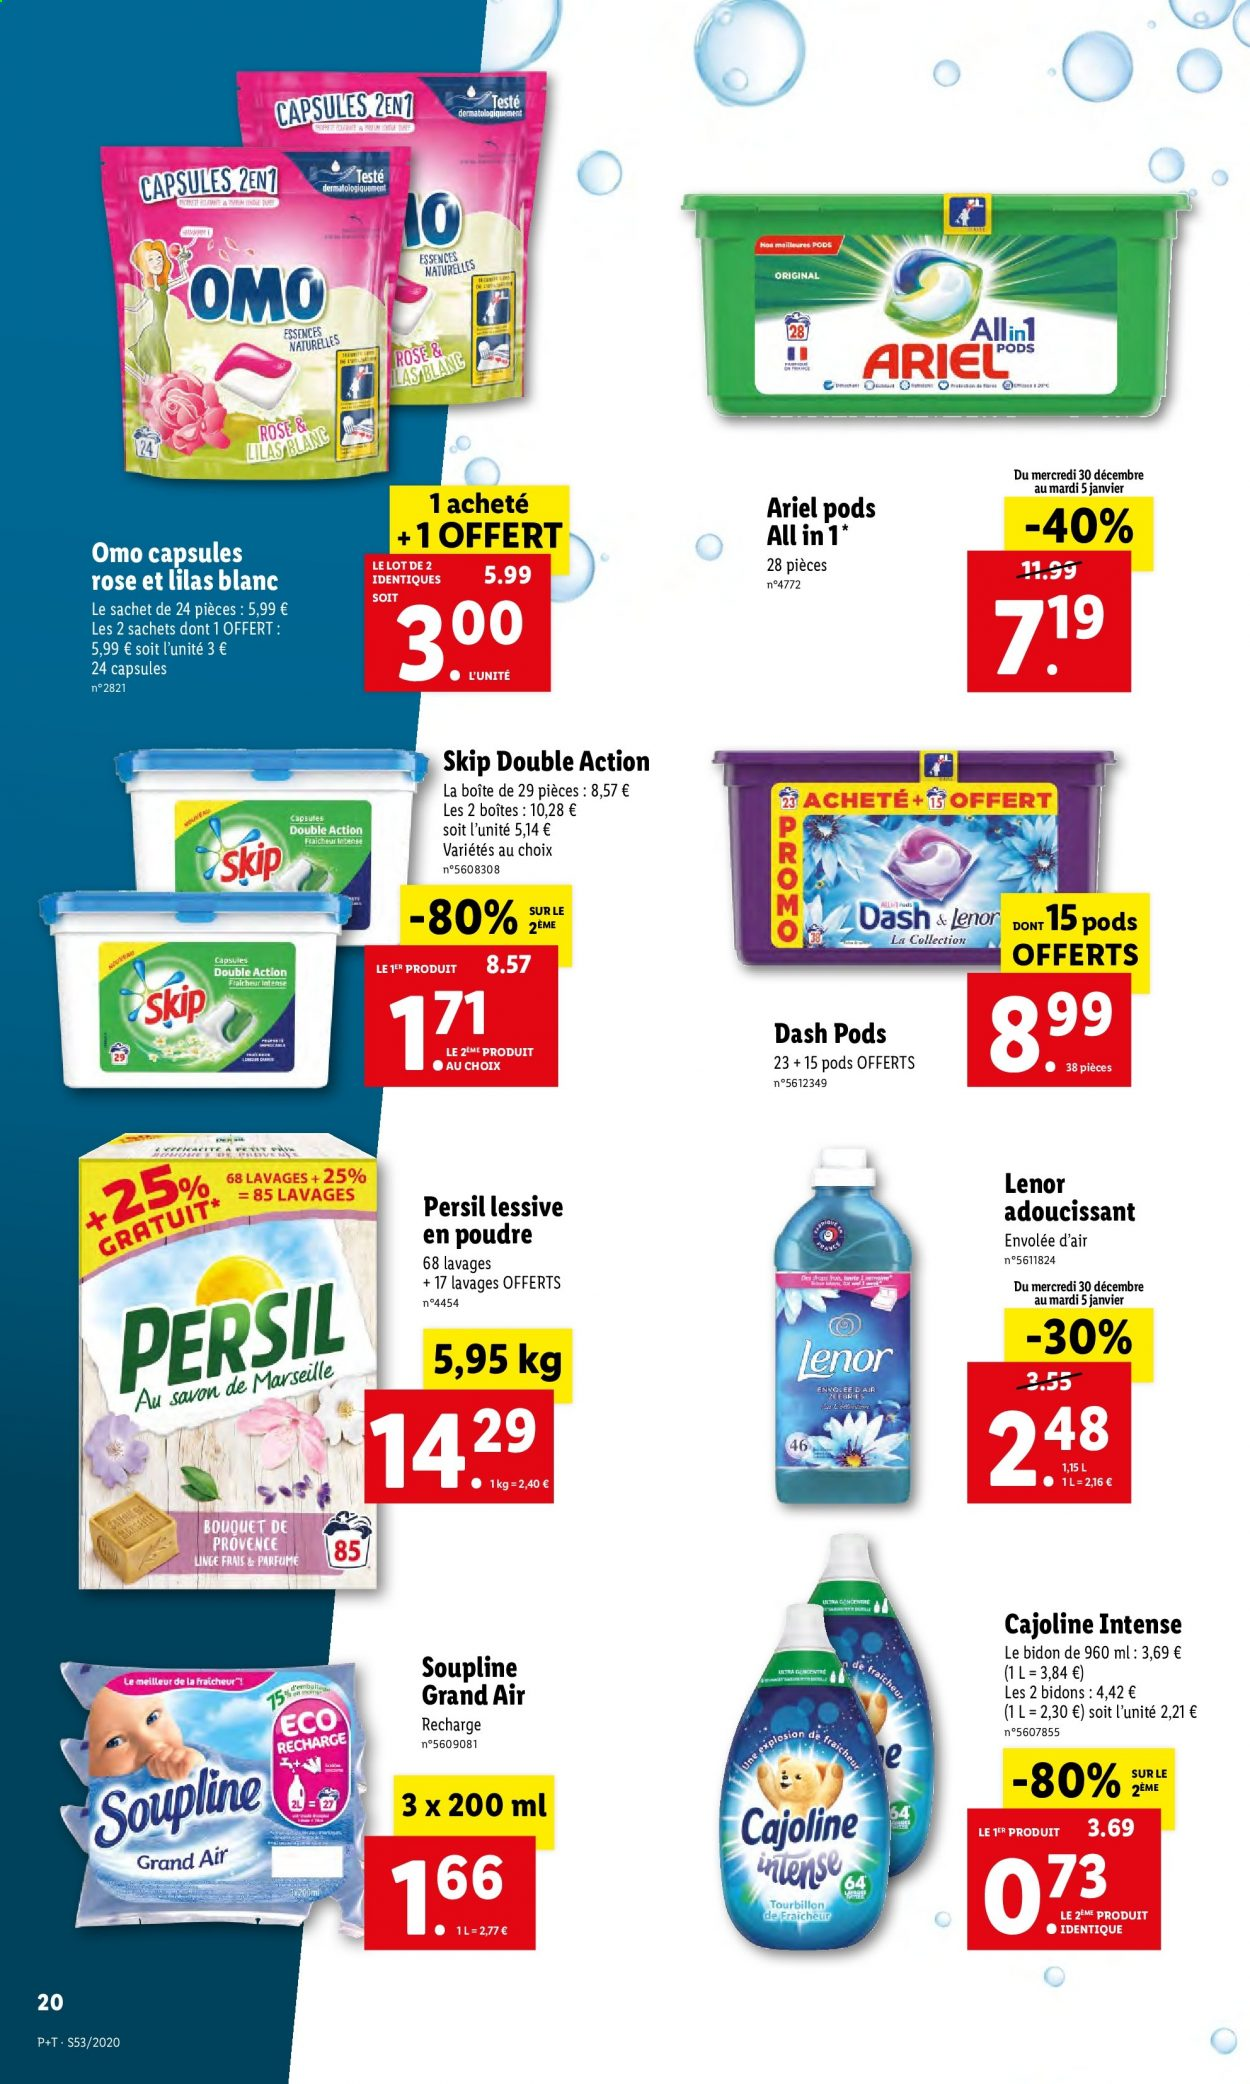 Catalogue Lidl - 30.12.2020 - 05.01.2021. Page 20.